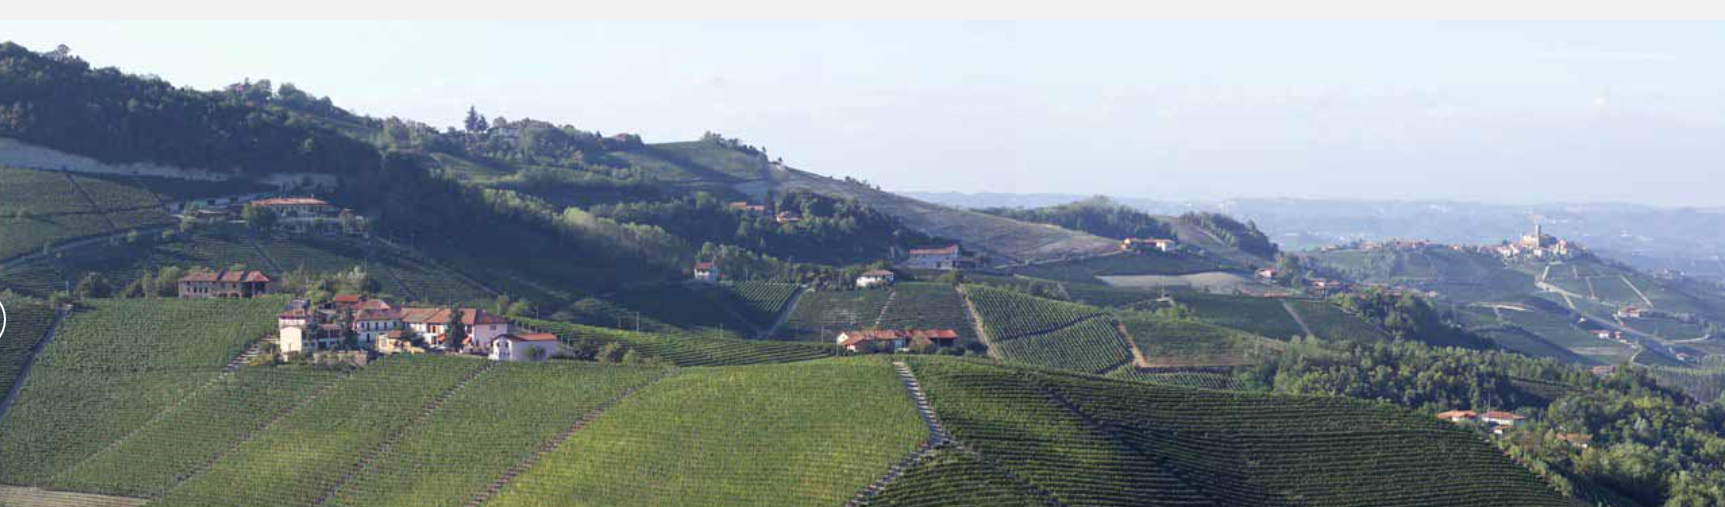 Weingut-Paolo-Conterno